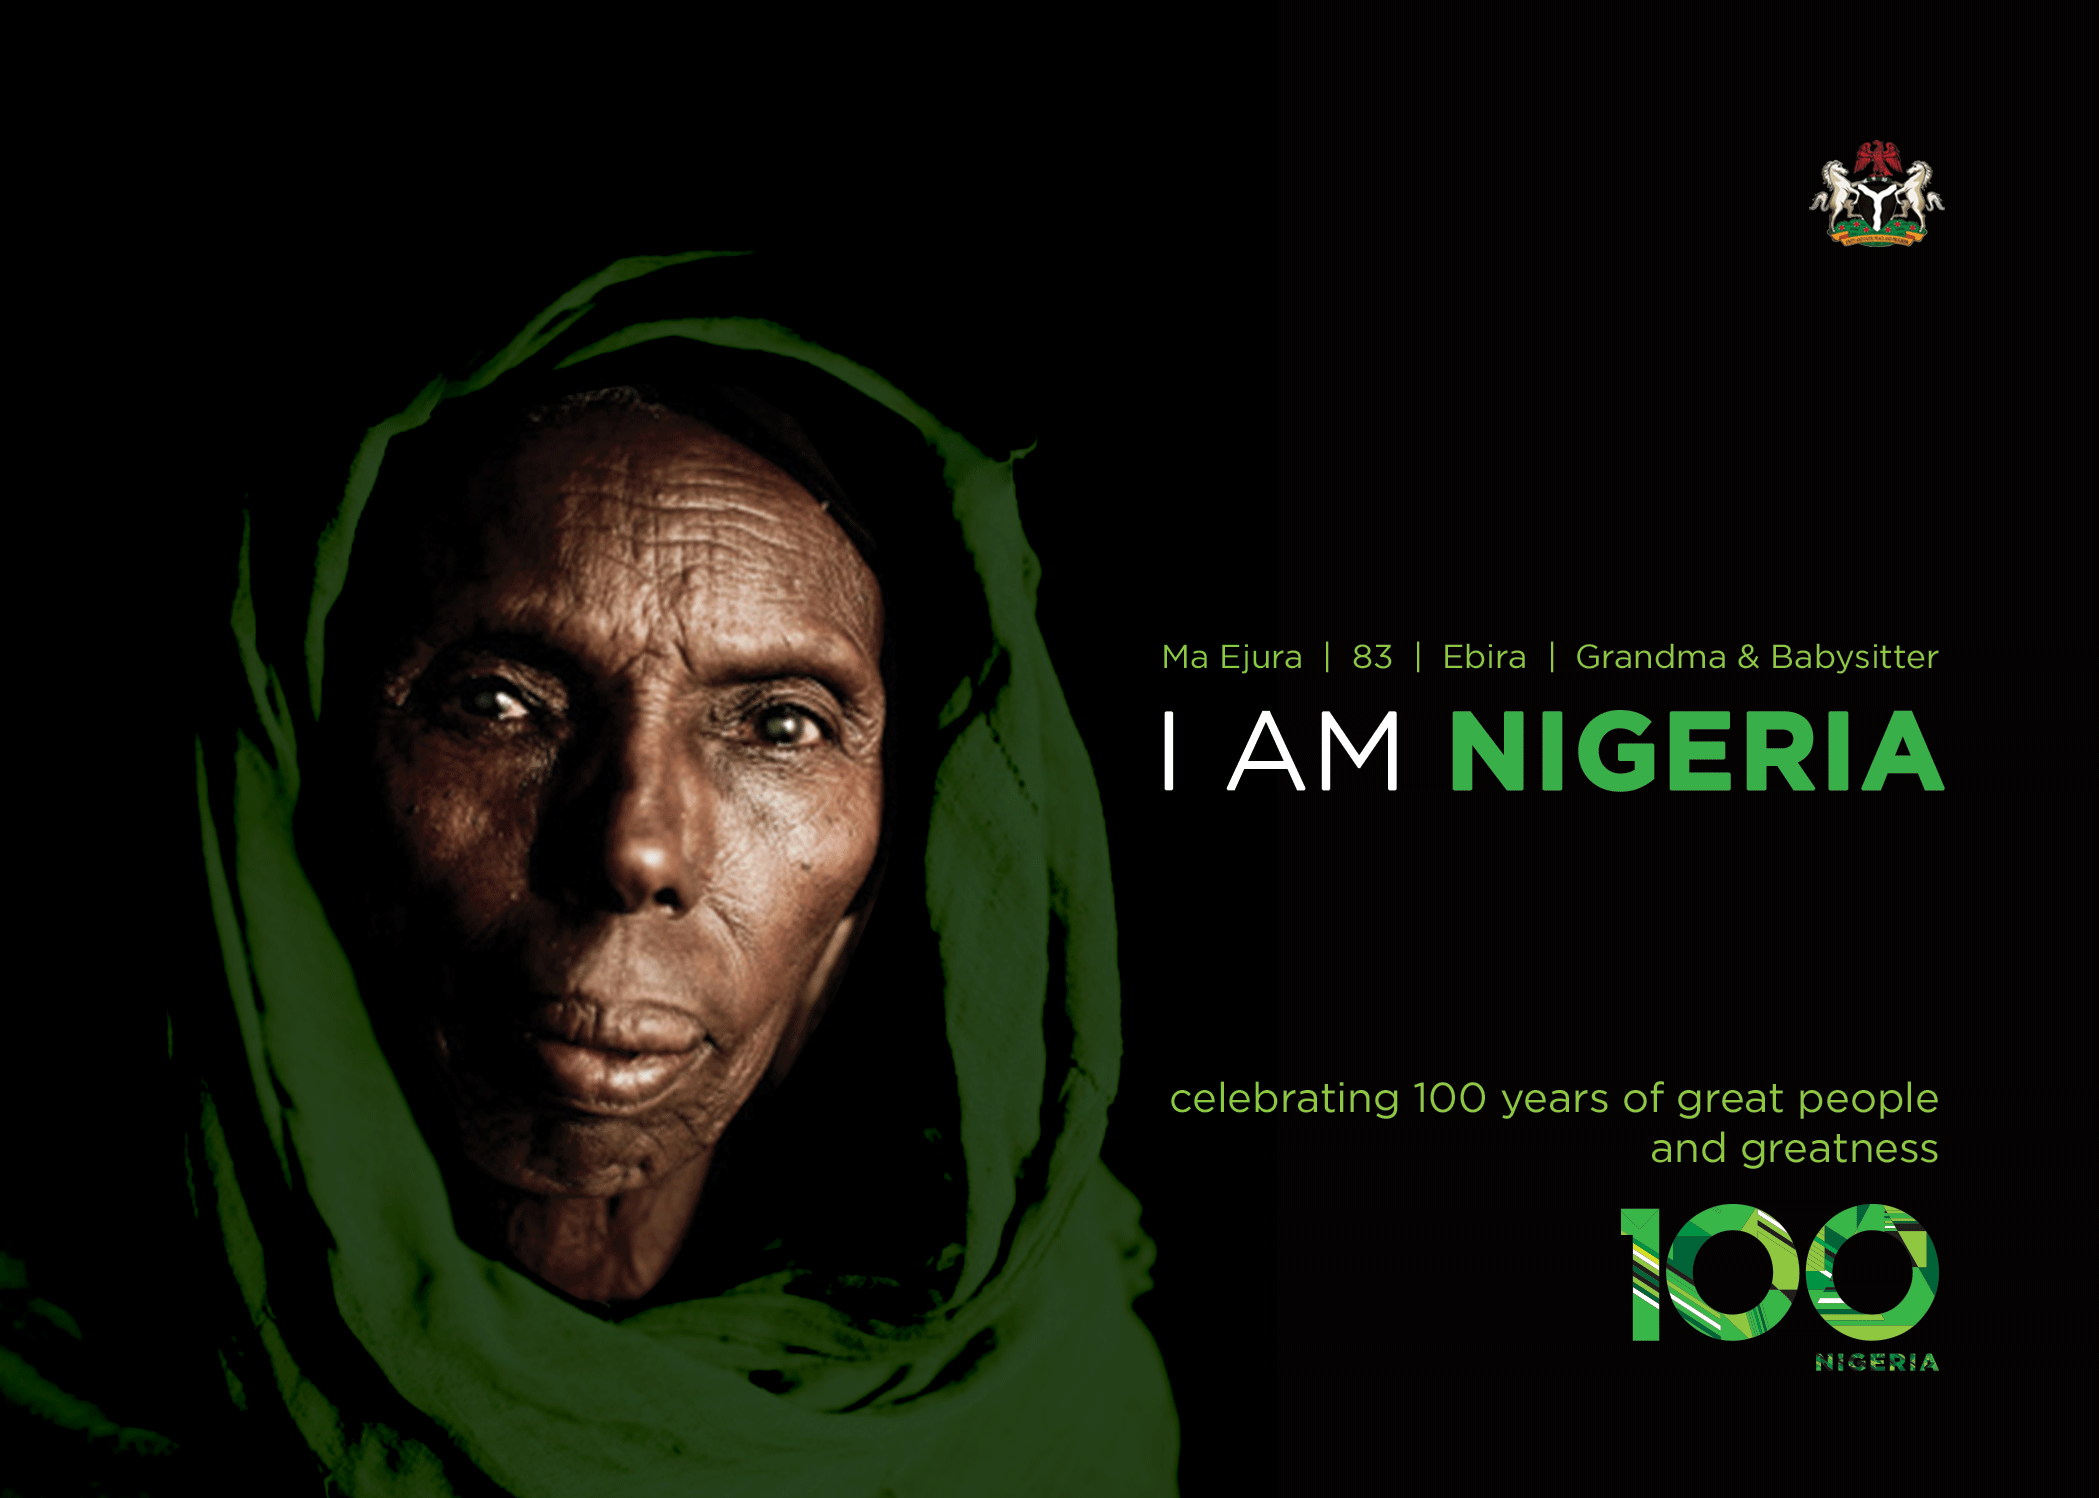 Ma Ejura I am Nigeria at 100